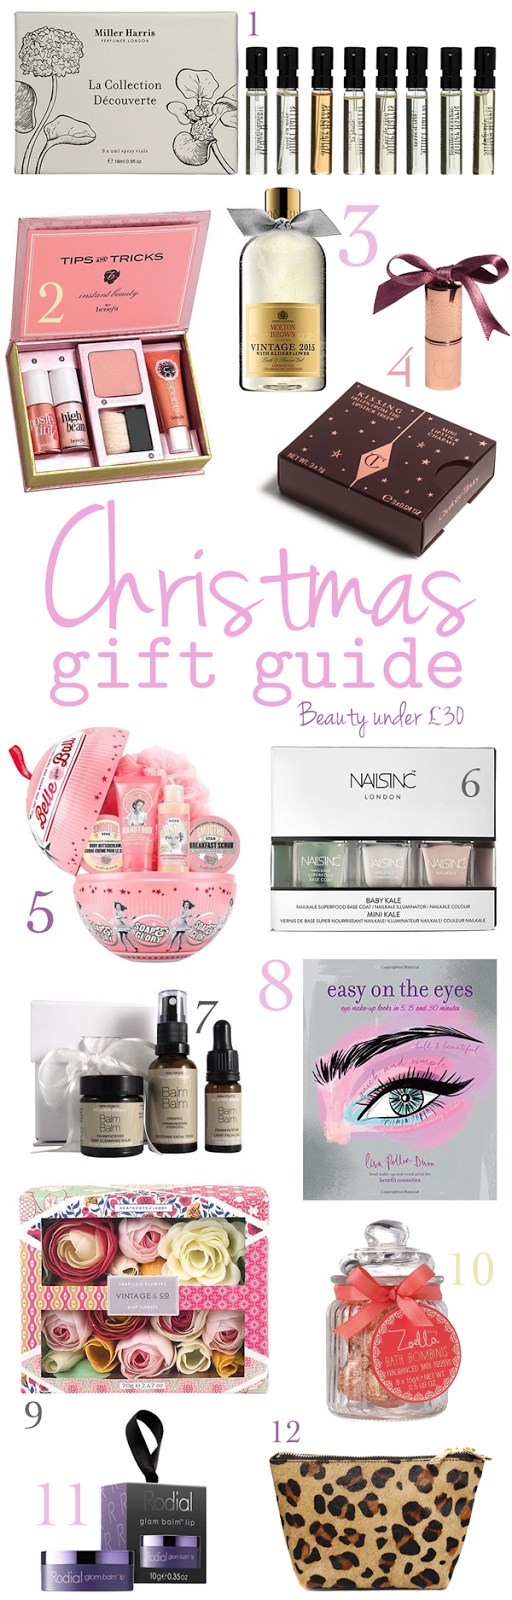 Christmas Gift Guide: Beauty Gifts Under £30